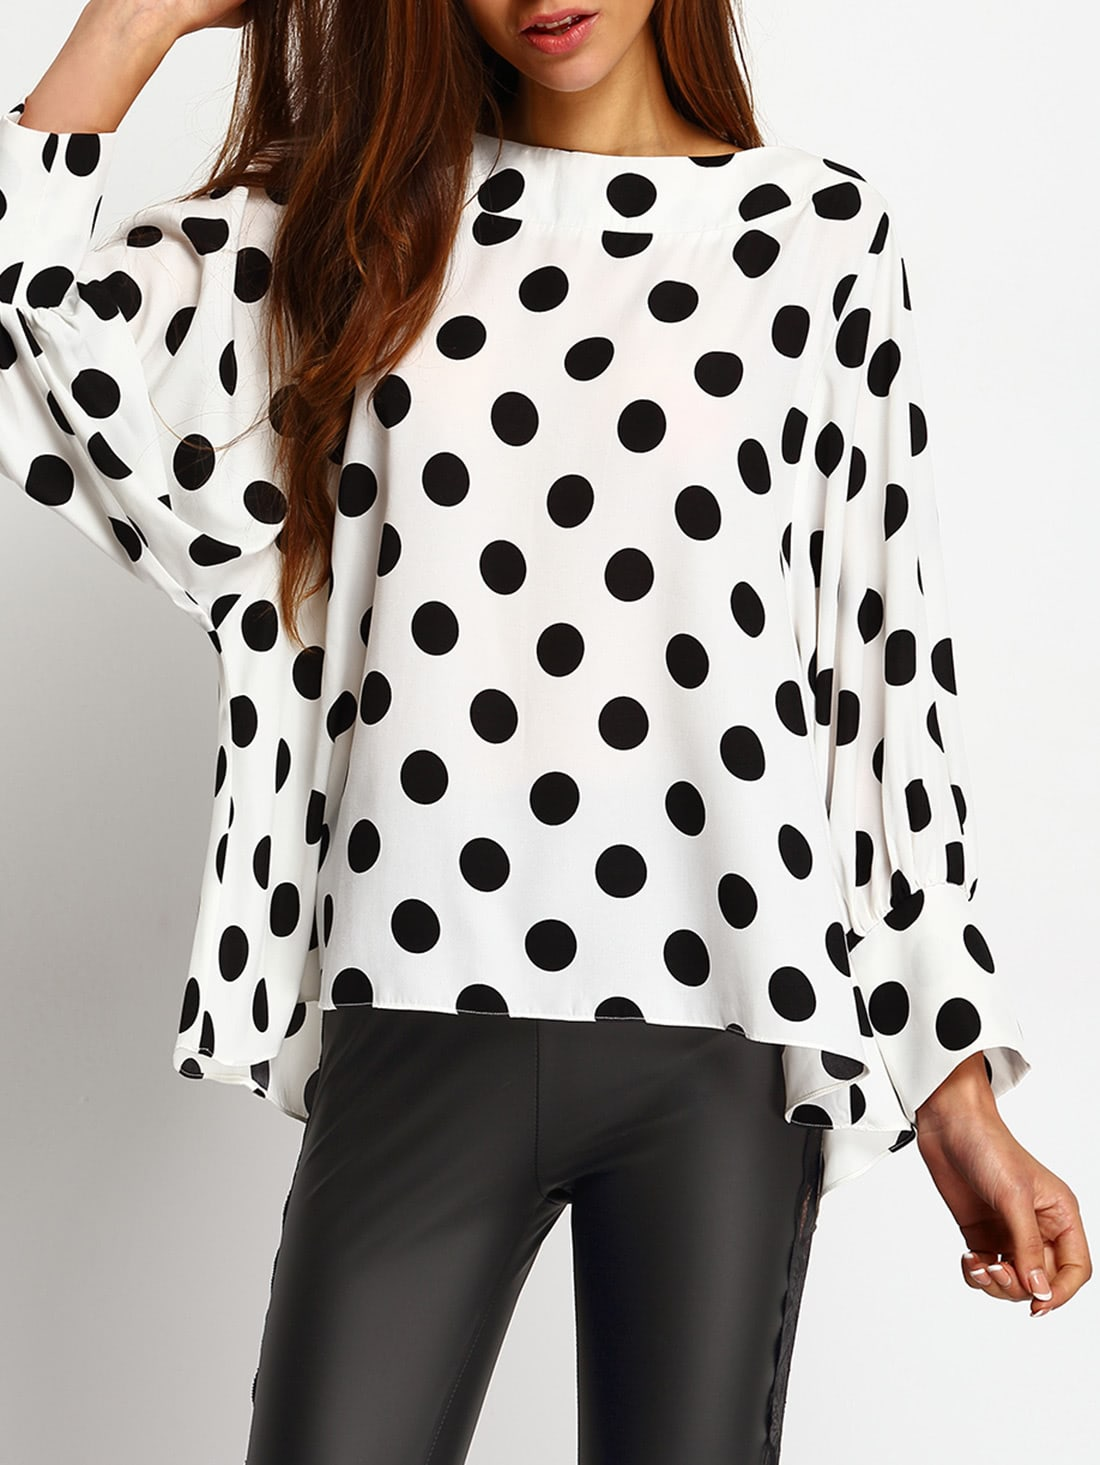 Polka Dots Blouses Shirts Tops